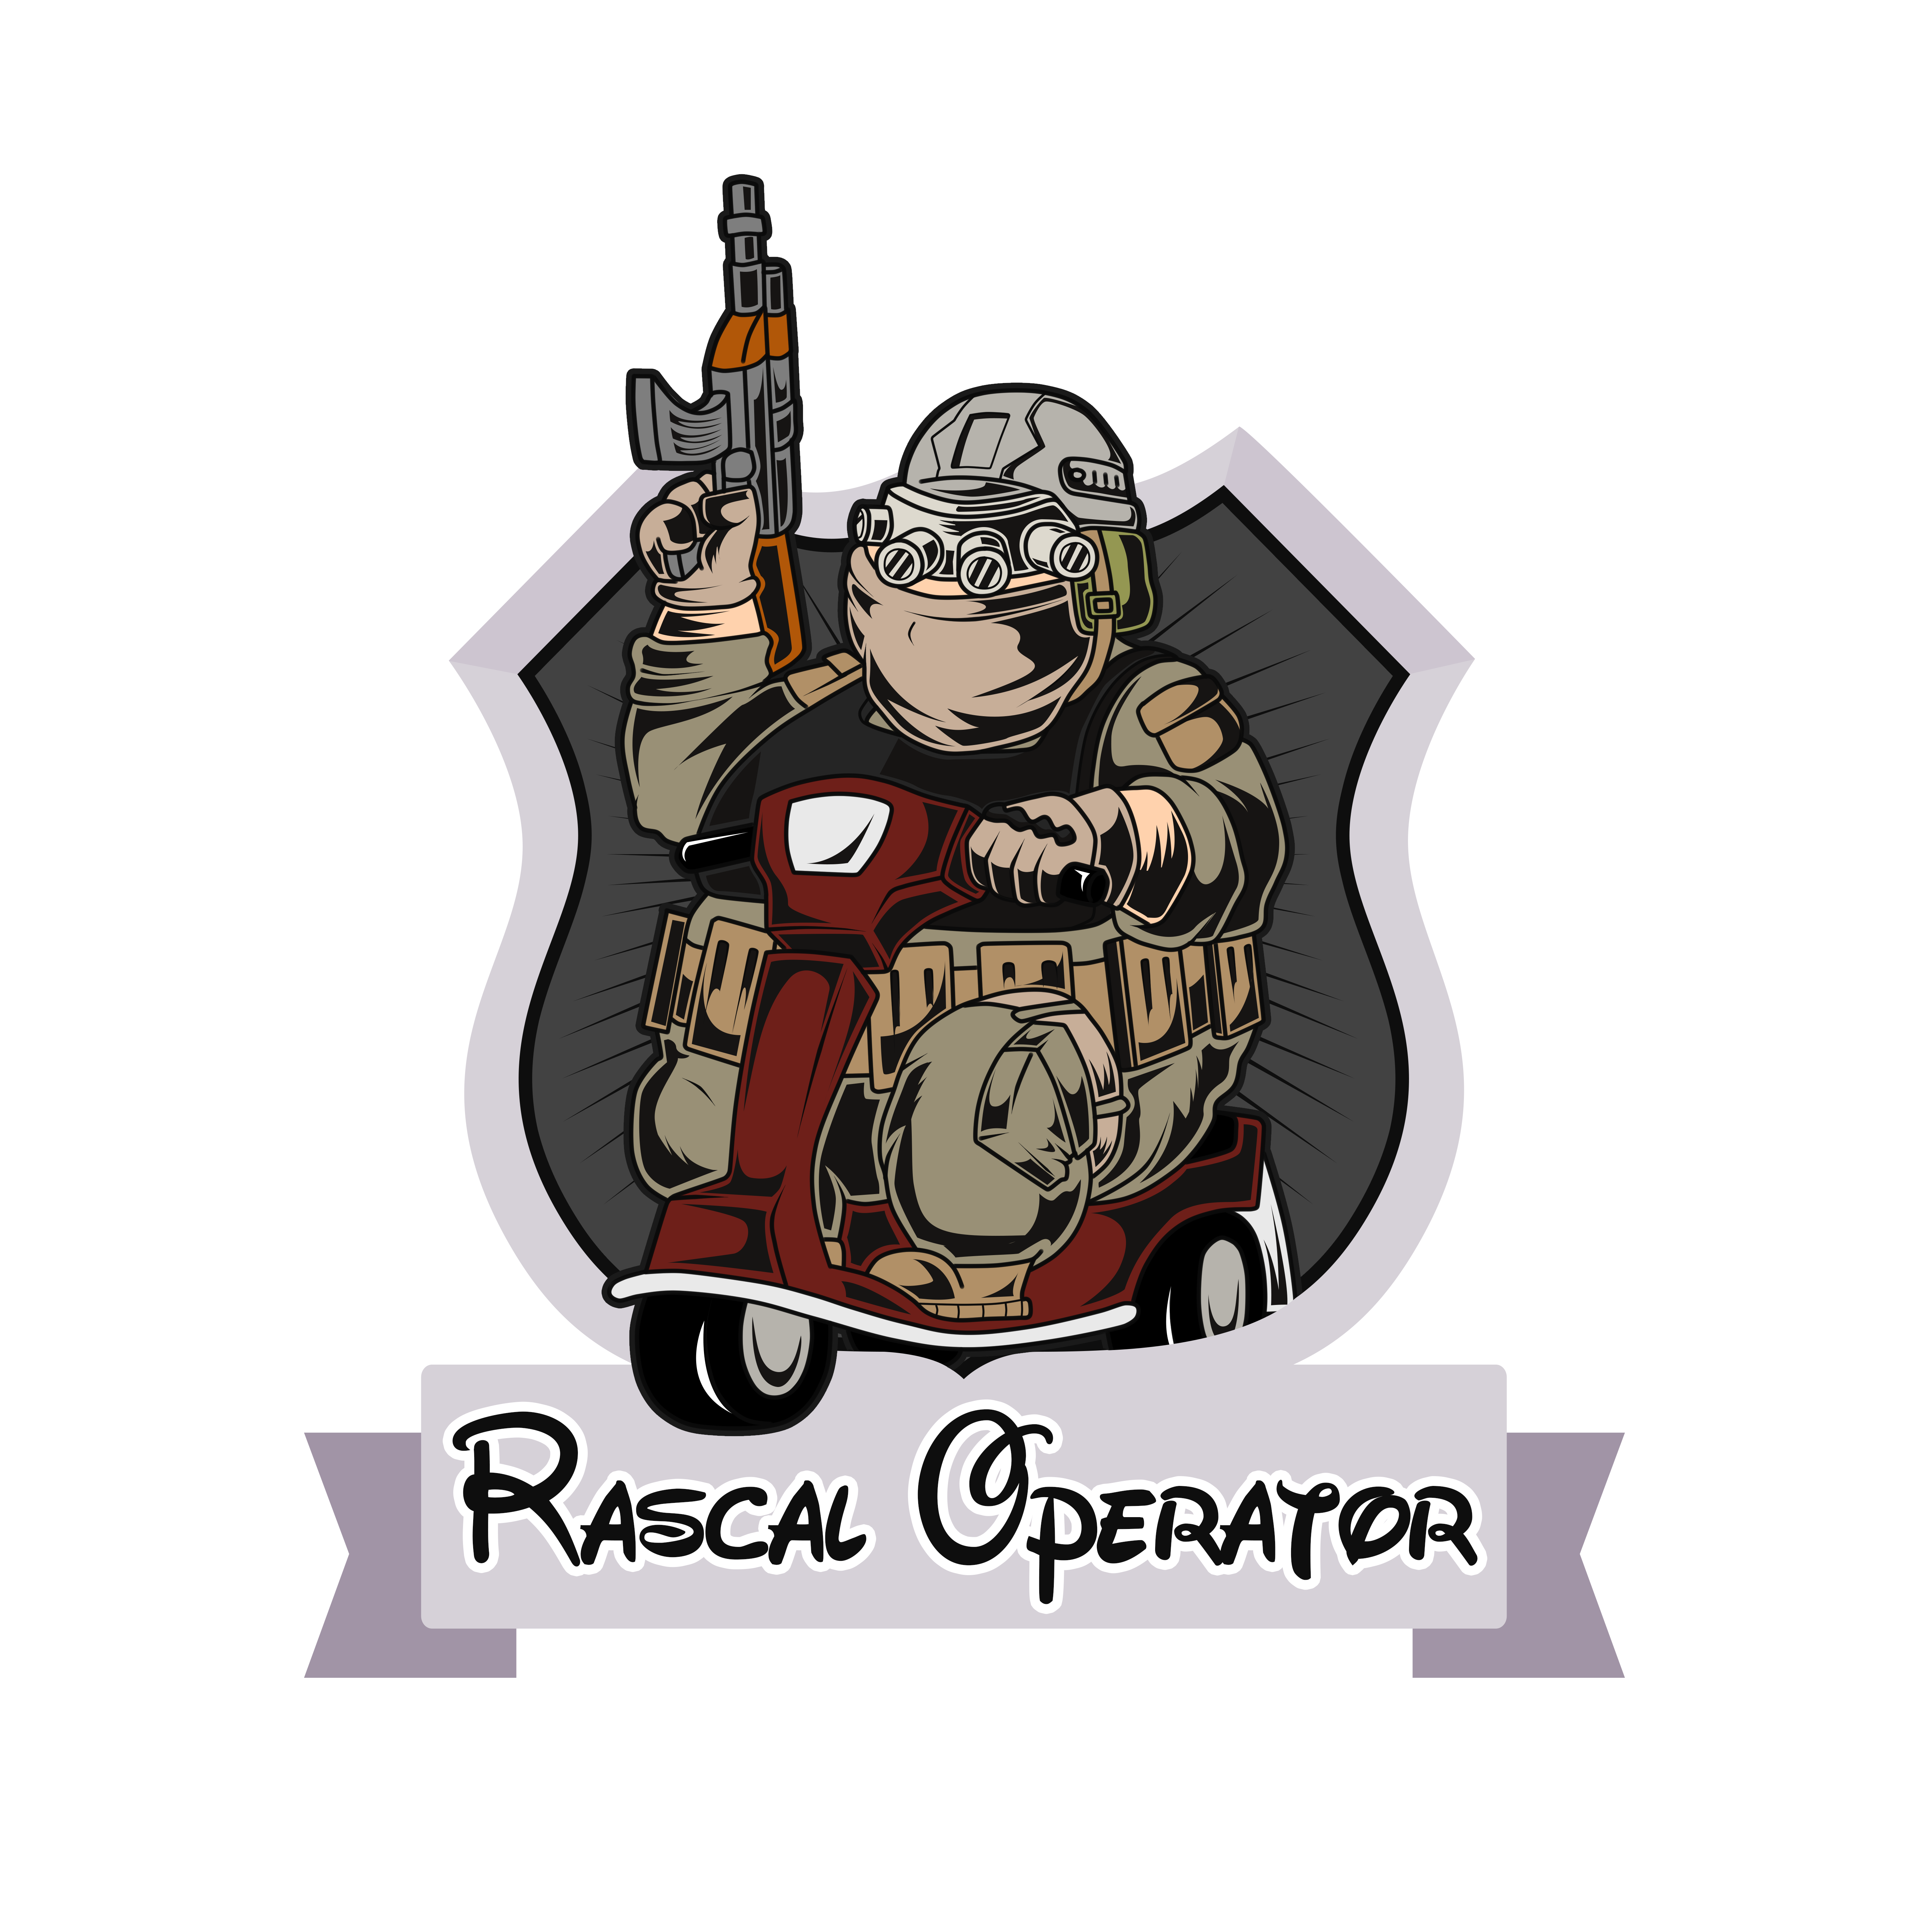 Need a patch design showing an obese person riding a rascal scooter dressed as military operator